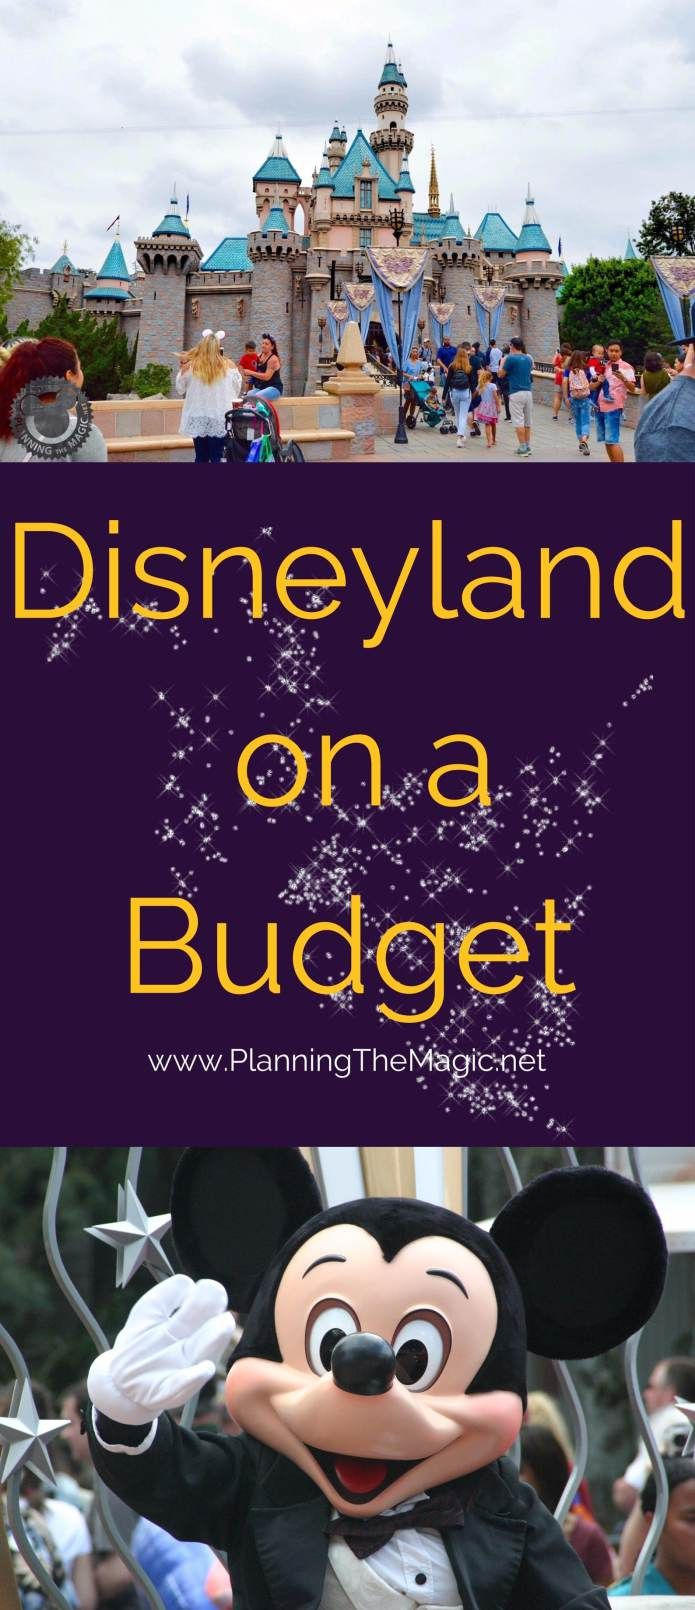 Disneyland on a Budget |  If you are planning a Disneyland trip, make sure it's one that save you the most money possible.  Find more information at http://www.planningthemagic.net